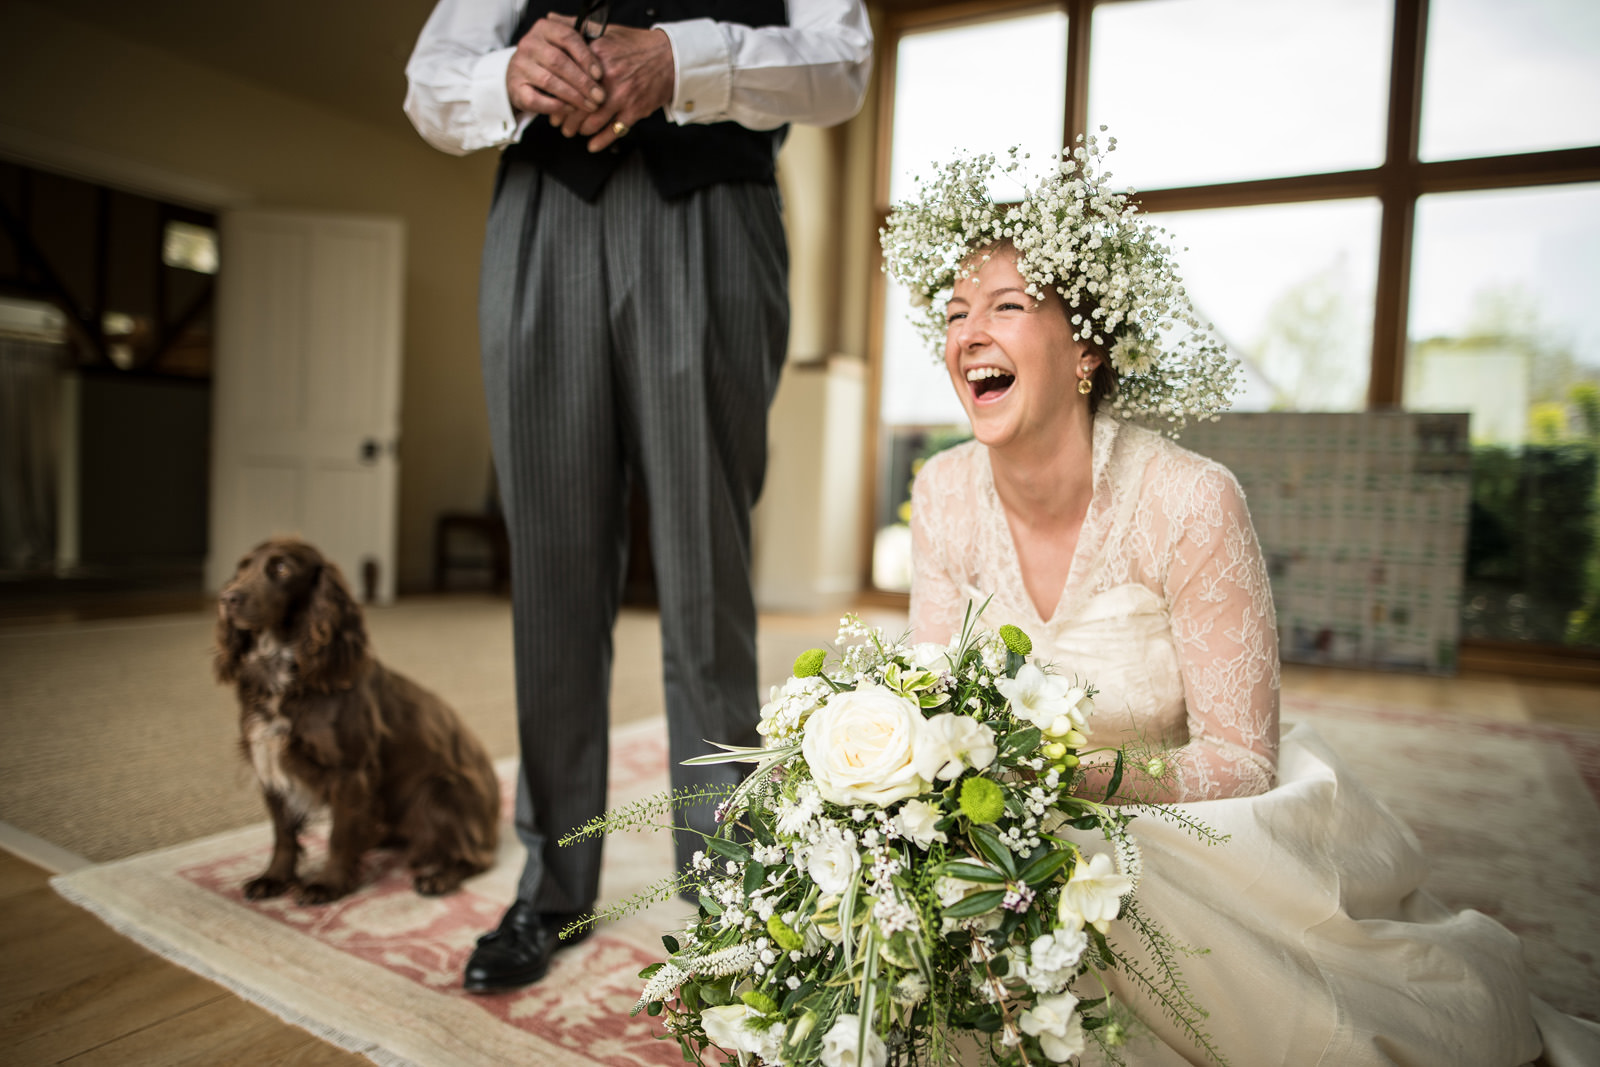 Laughing Bride with flowers and dog